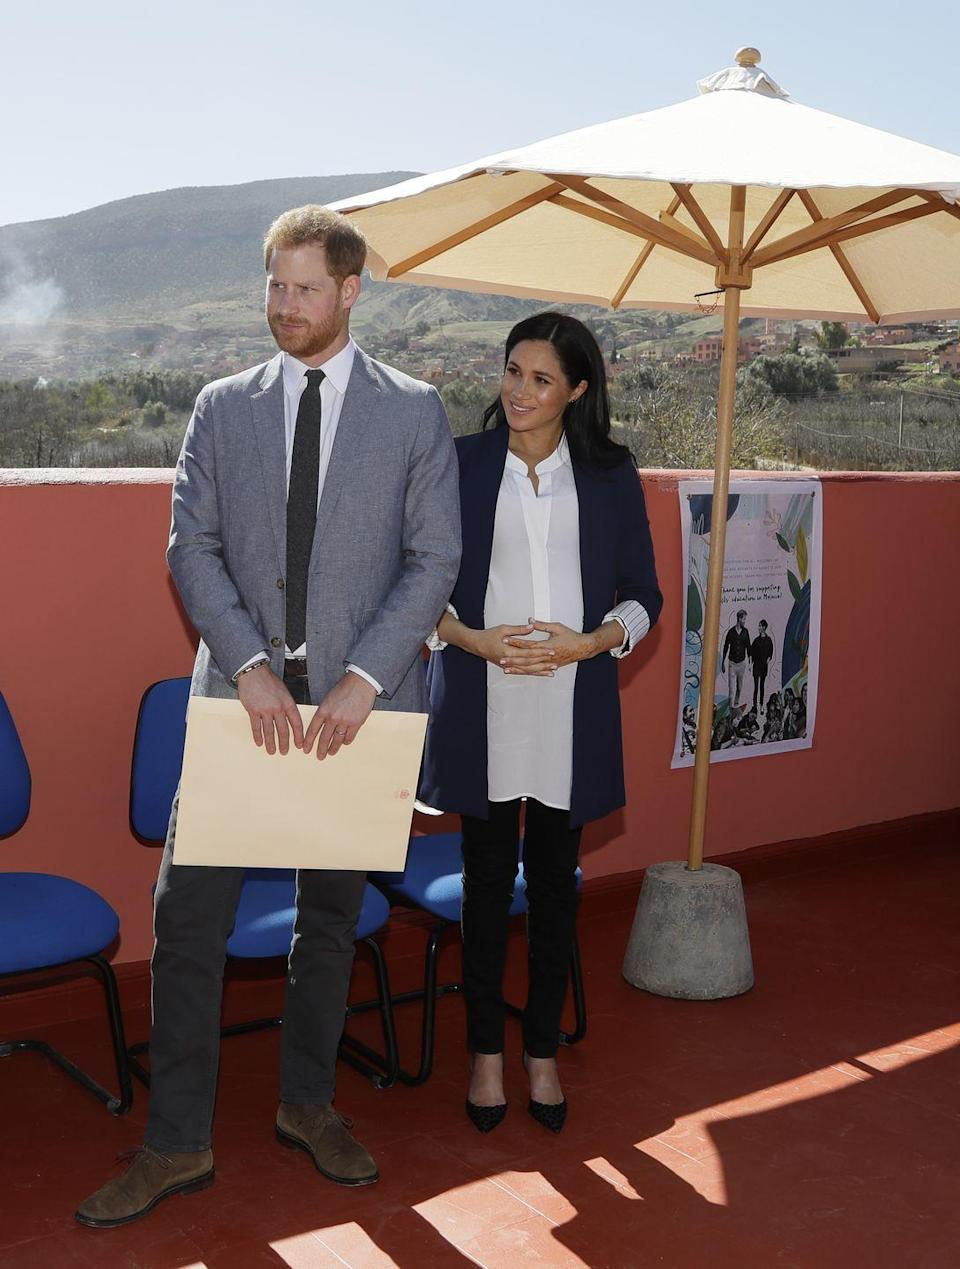 "<p>Later in the day the Duke and Duchess of Sussex attend an Investiture of the founder of Education for All. As it was a more formal occasion Meghan changed into Manolo Blahnik heels and a tailored white shirt. </p><p><a class=""link rapid-noclick-resp"" href=""https://go.redirectingat.com?id=74968X1596630&url=https%3A%2F%2Fshop.nordstrom.com%2Fs%2Fmanolo-blahnik-bb-pump-women%2F3434469&sref=https%3A%2F%2Fwww.townandcountrymag.com%2Fstyle%2Ffashion-trends%2Fg3272%2Fmeghan-markle-preppy-style%2F"" rel=""nofollow noopener"" target=""_blank"" data-ylk=""slk:Shop Similar"">Shop Similar</a> <em>BB Pump, Manolo Blahnik, $625 </em> </p>"